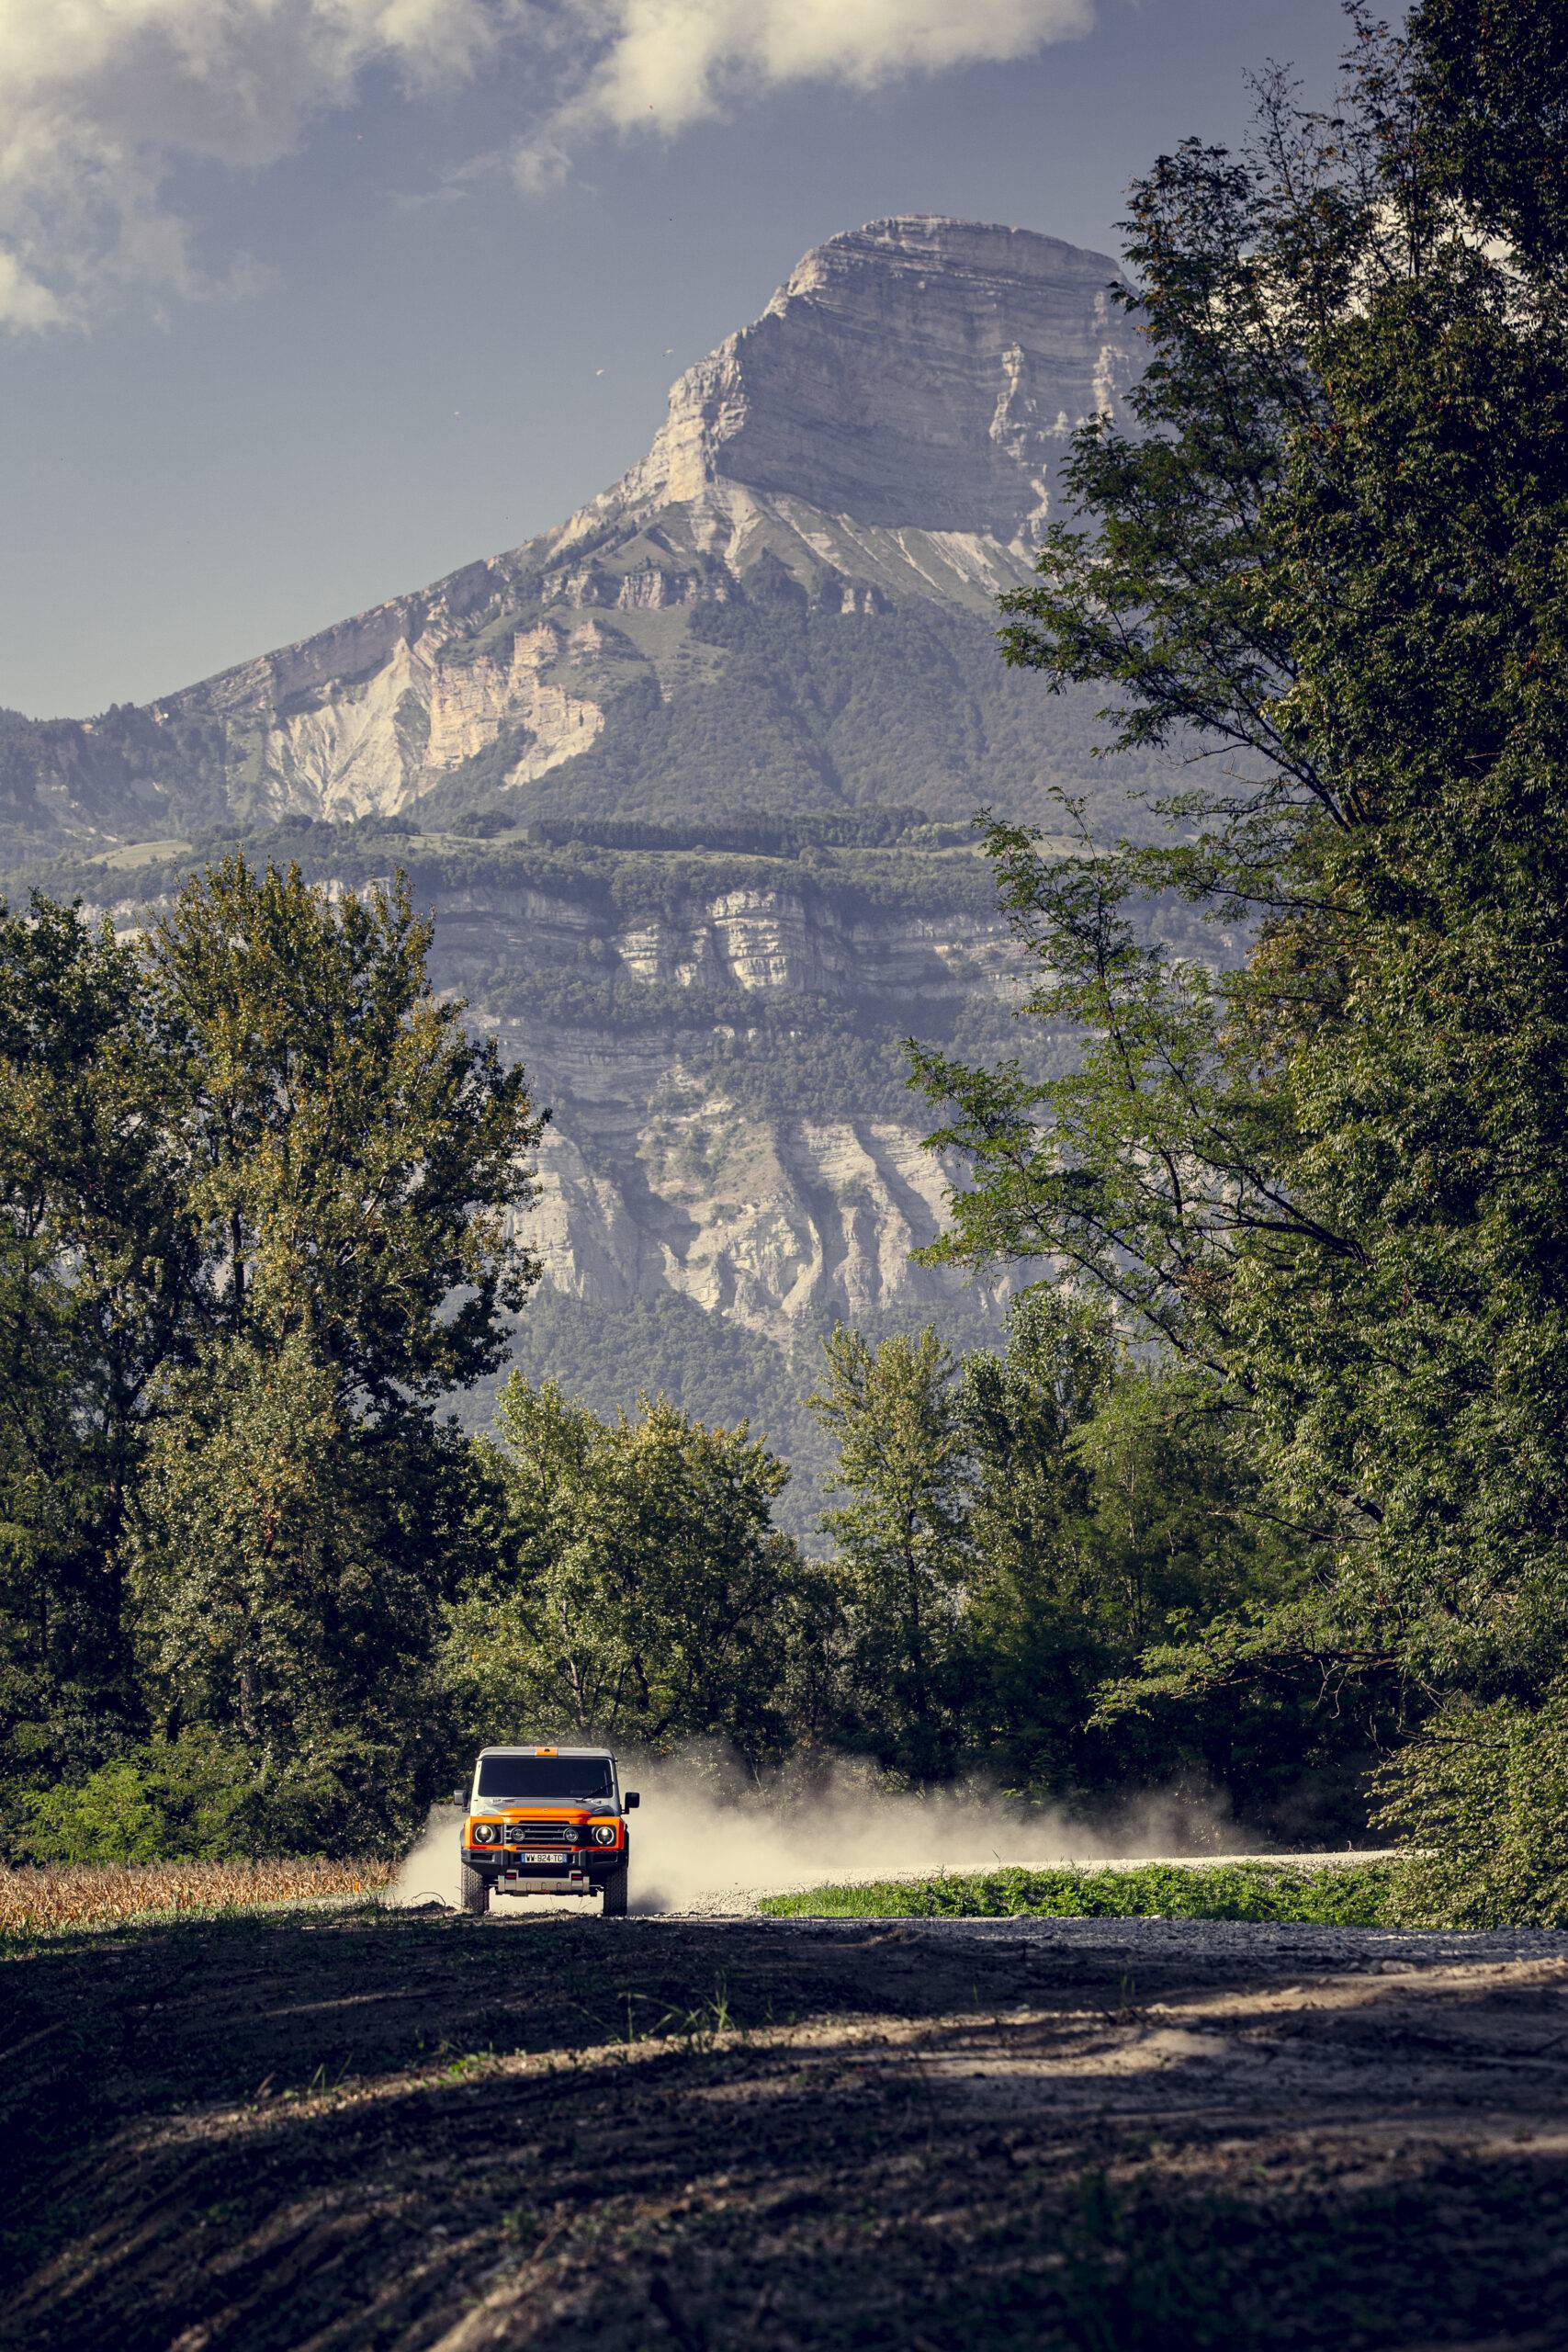 The orange and silver INEOS Grenadier drives on dirt road in front of mountains